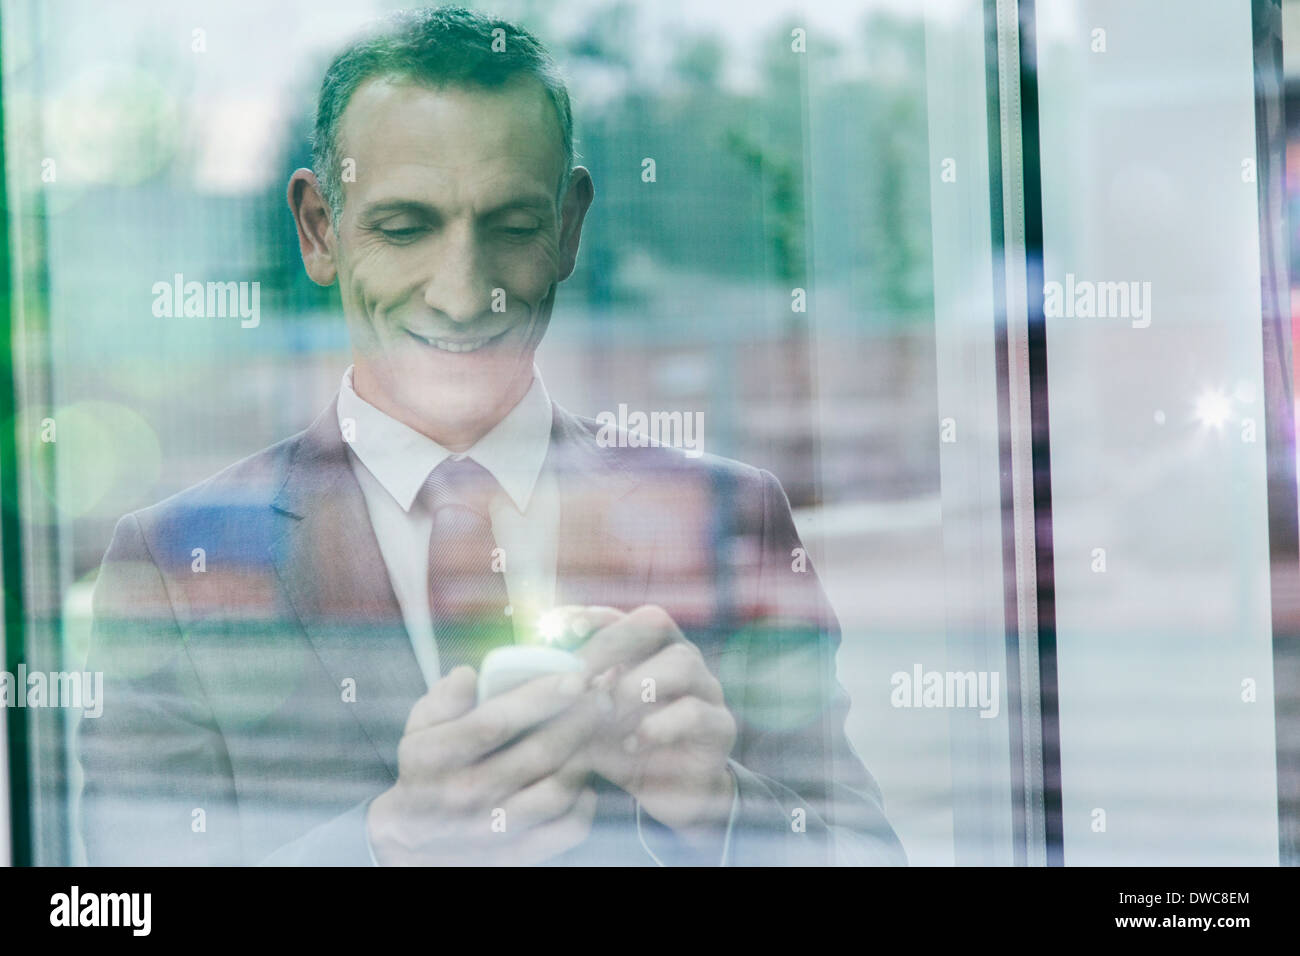 Businessman With glowing doigt avec l'écran tactile du smartphone Photo Stock